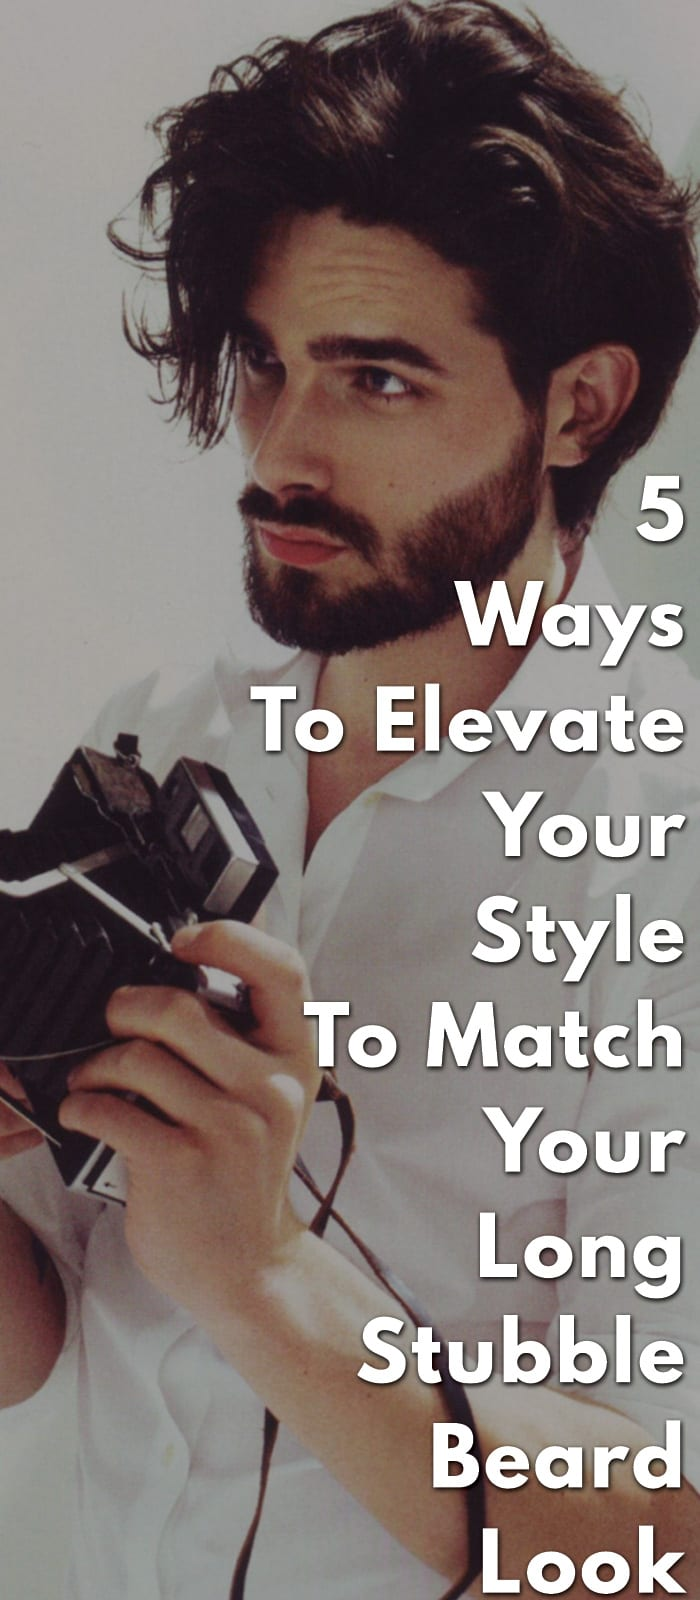 5-Ways-To-Elevate-Your-Style-To-Match-Your-Long-Stubble-Beard-Look.